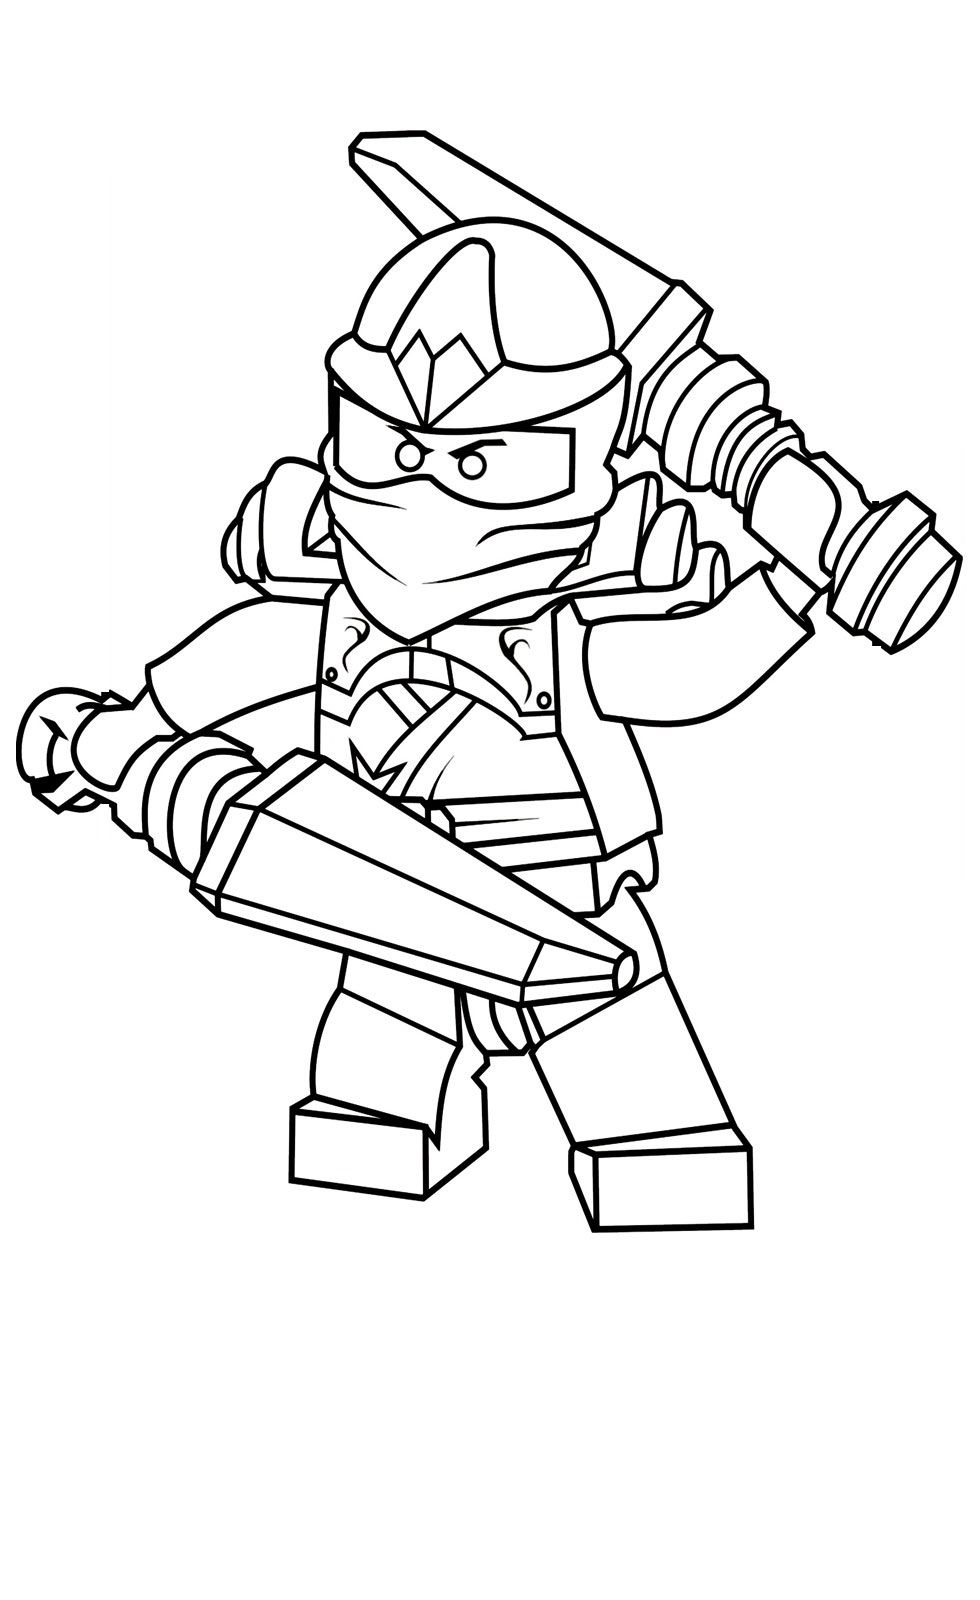 blue ninjago coloring pages free printable ninjago coloring pages for kids - Ninjago Pictures To Color